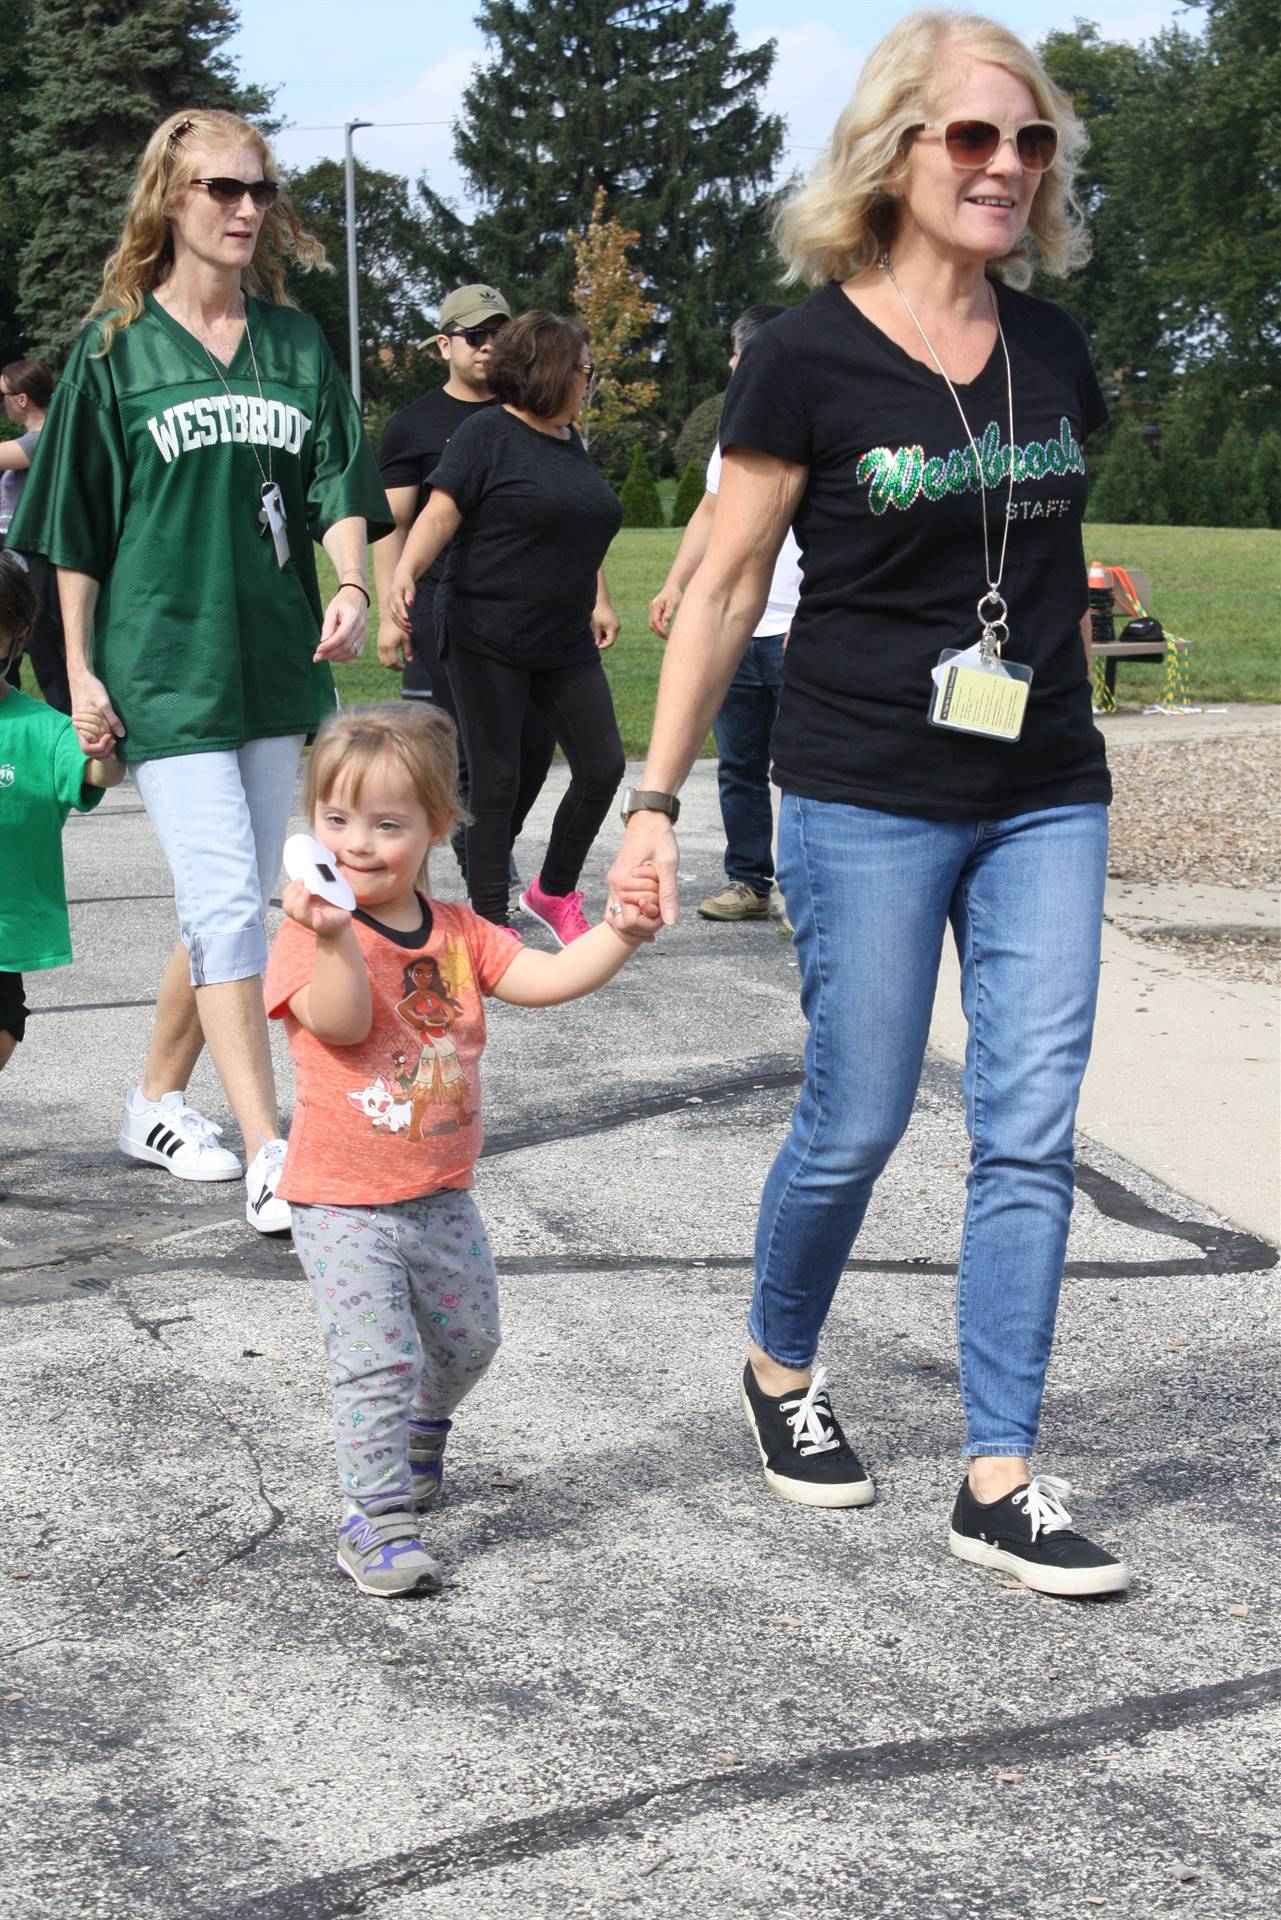 Walk for Westbrook Fundraiser - 10/3/18